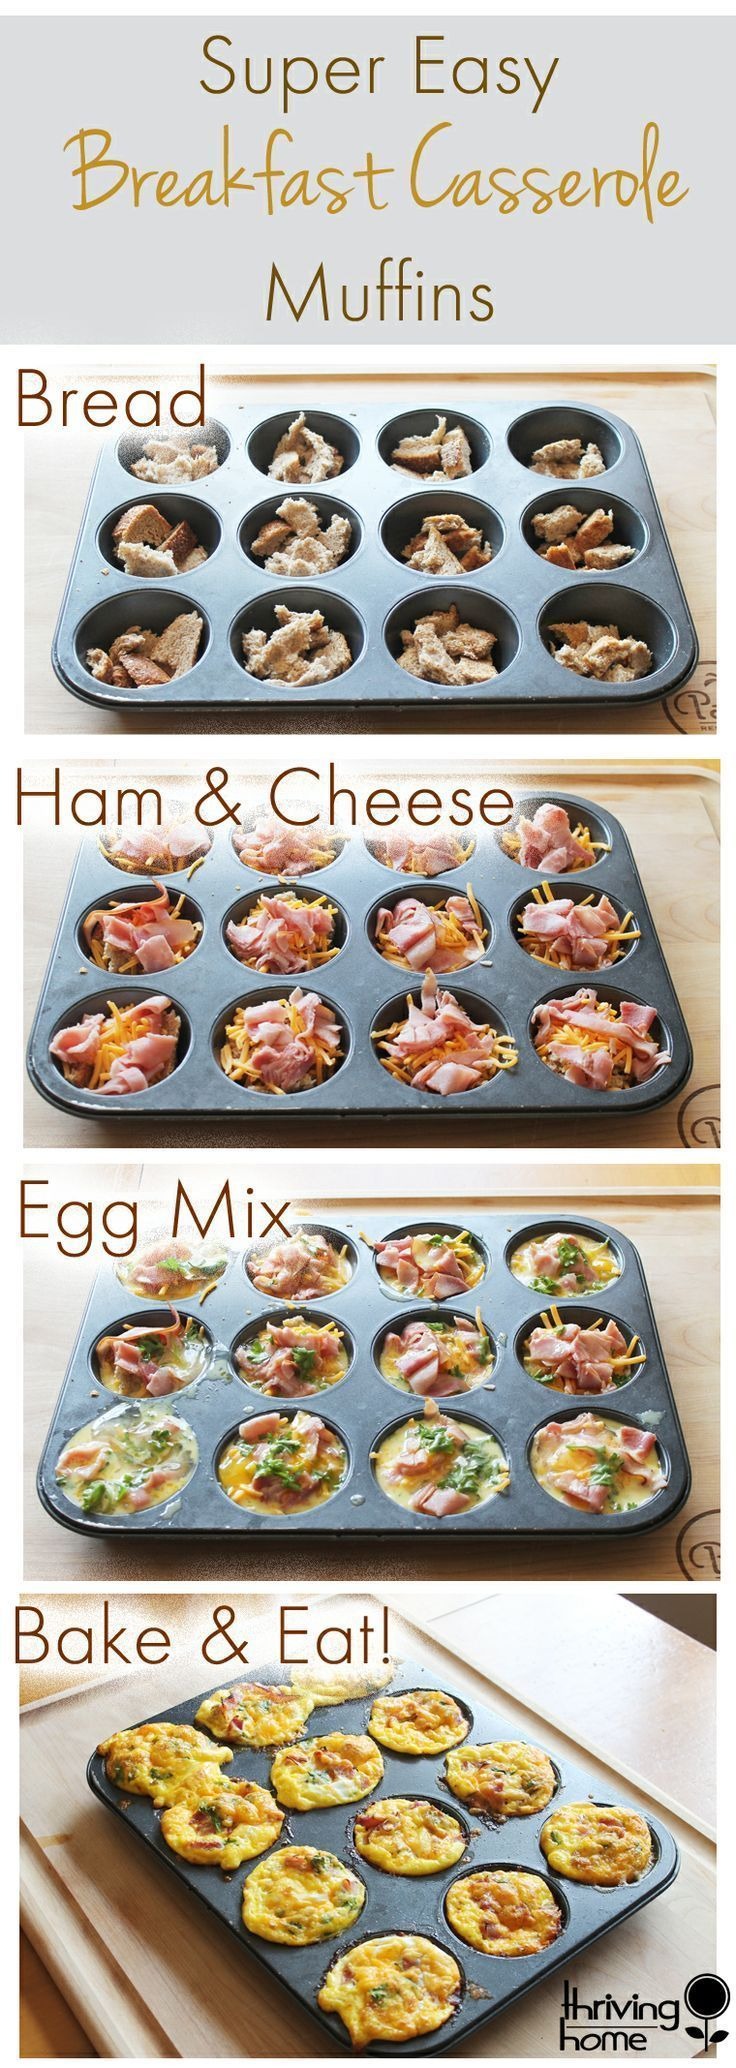 Easy Breakfast Casserole Muffins - Thriving Home